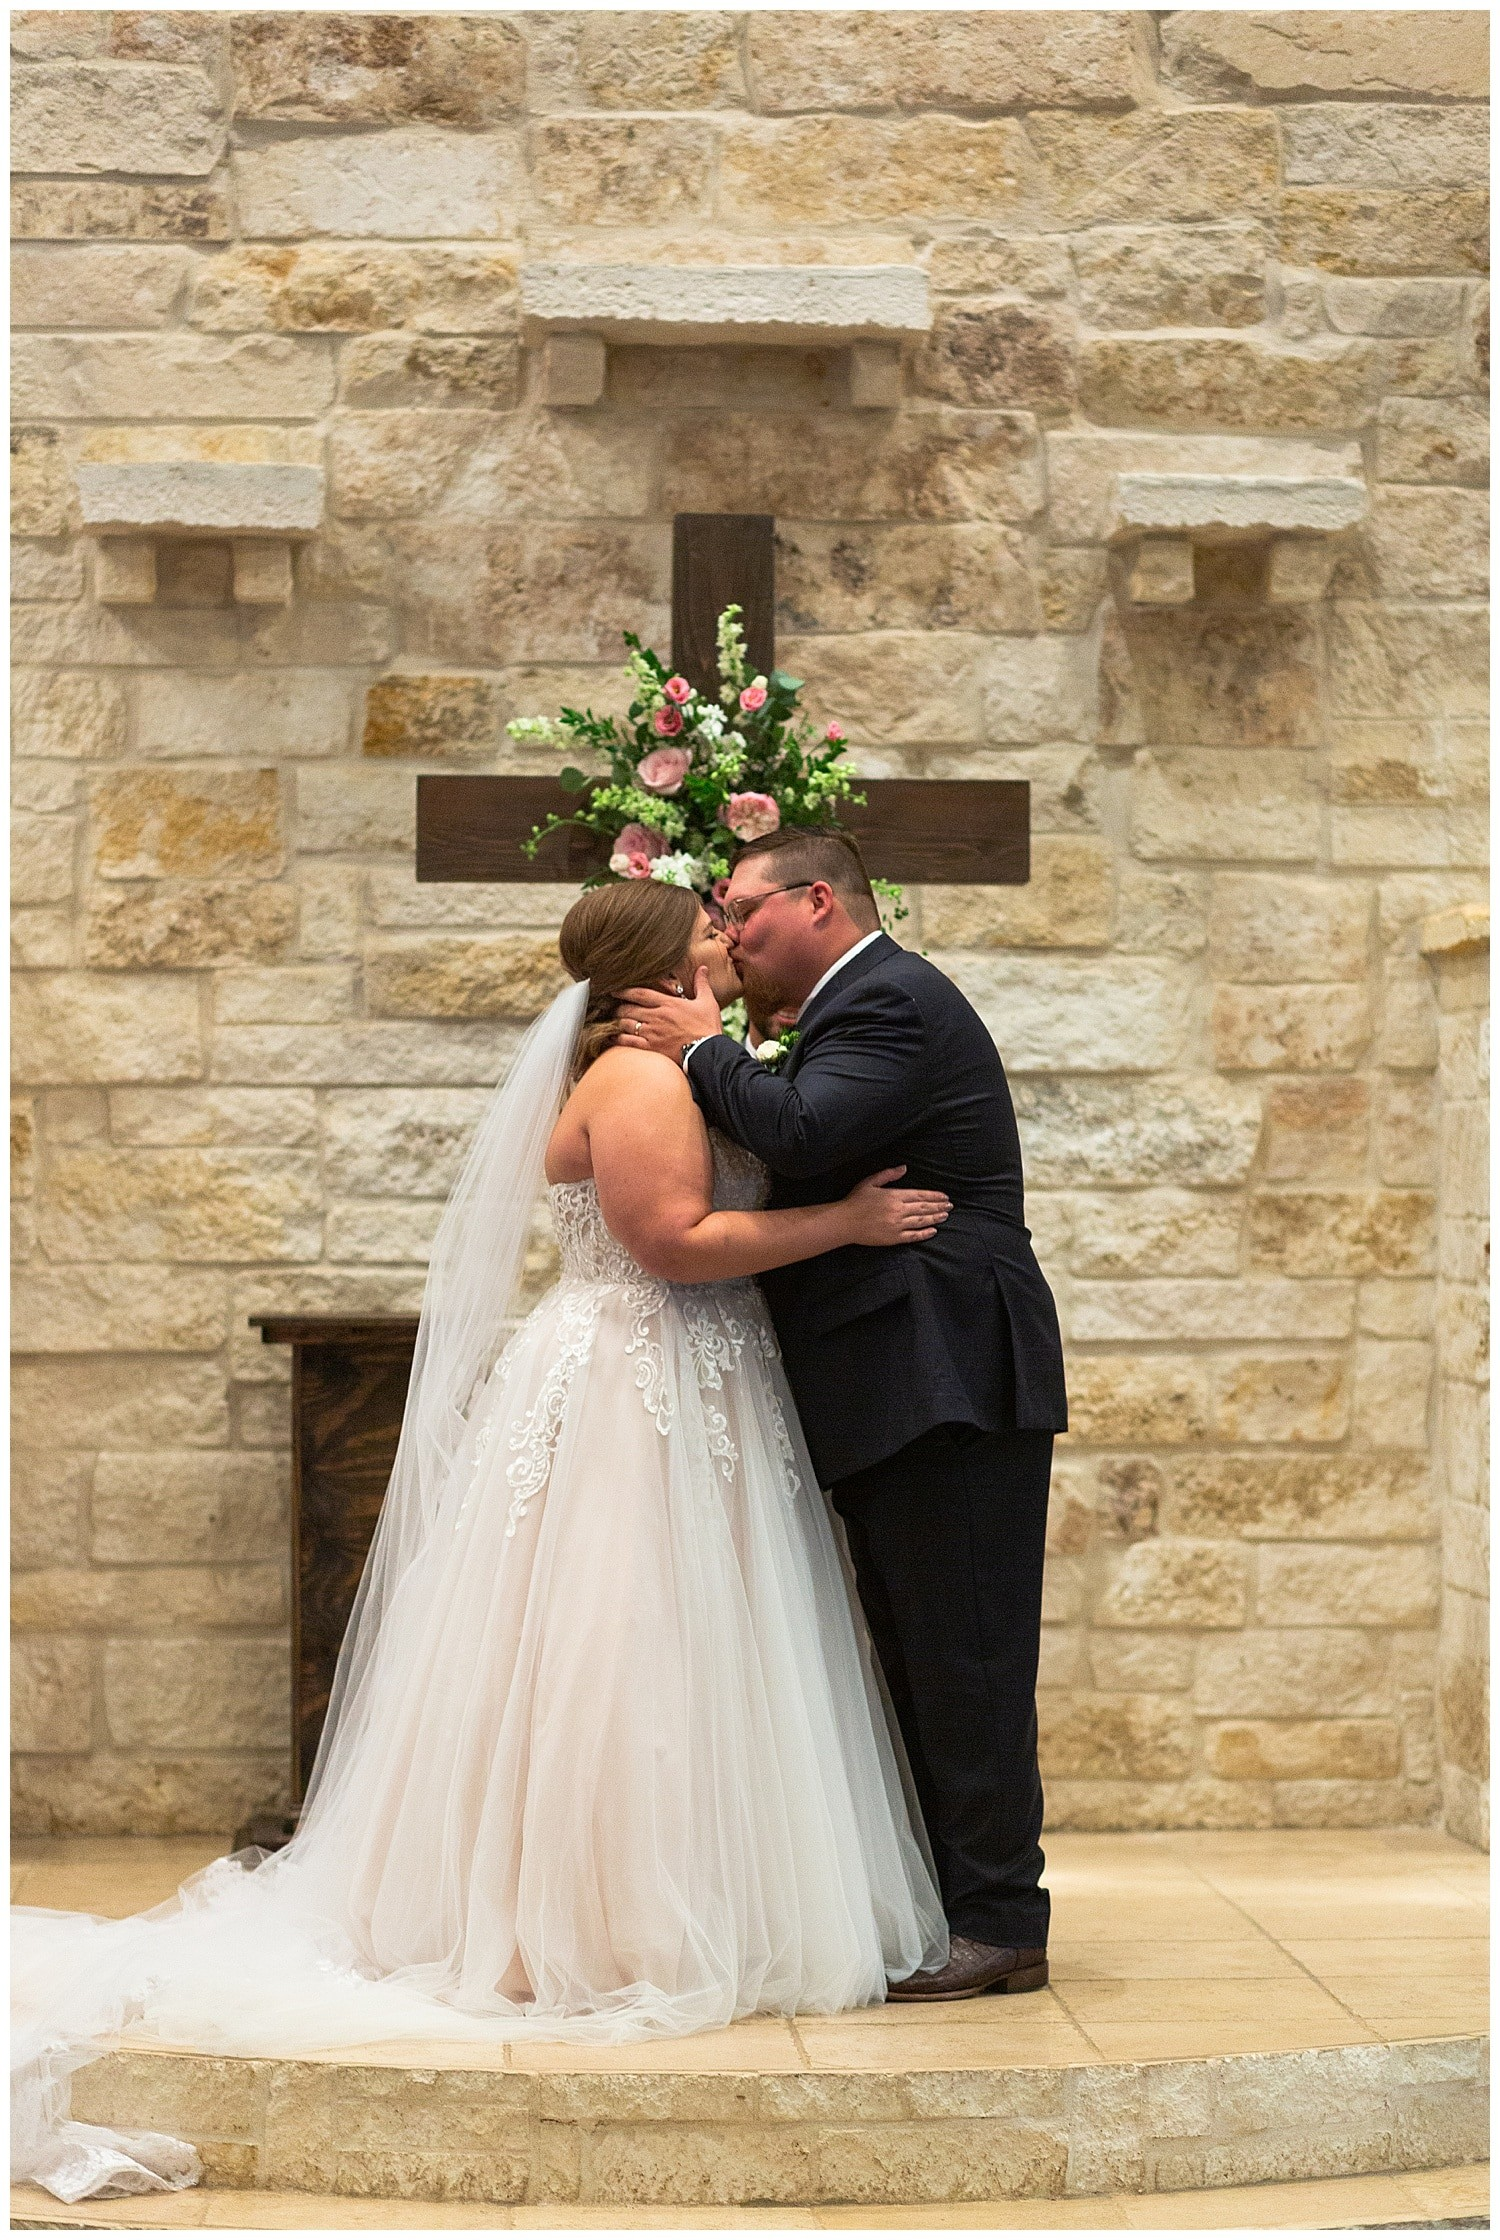 wedding ceremony at Magnolia Bells wedding venue photographed by Swish and Click Photography